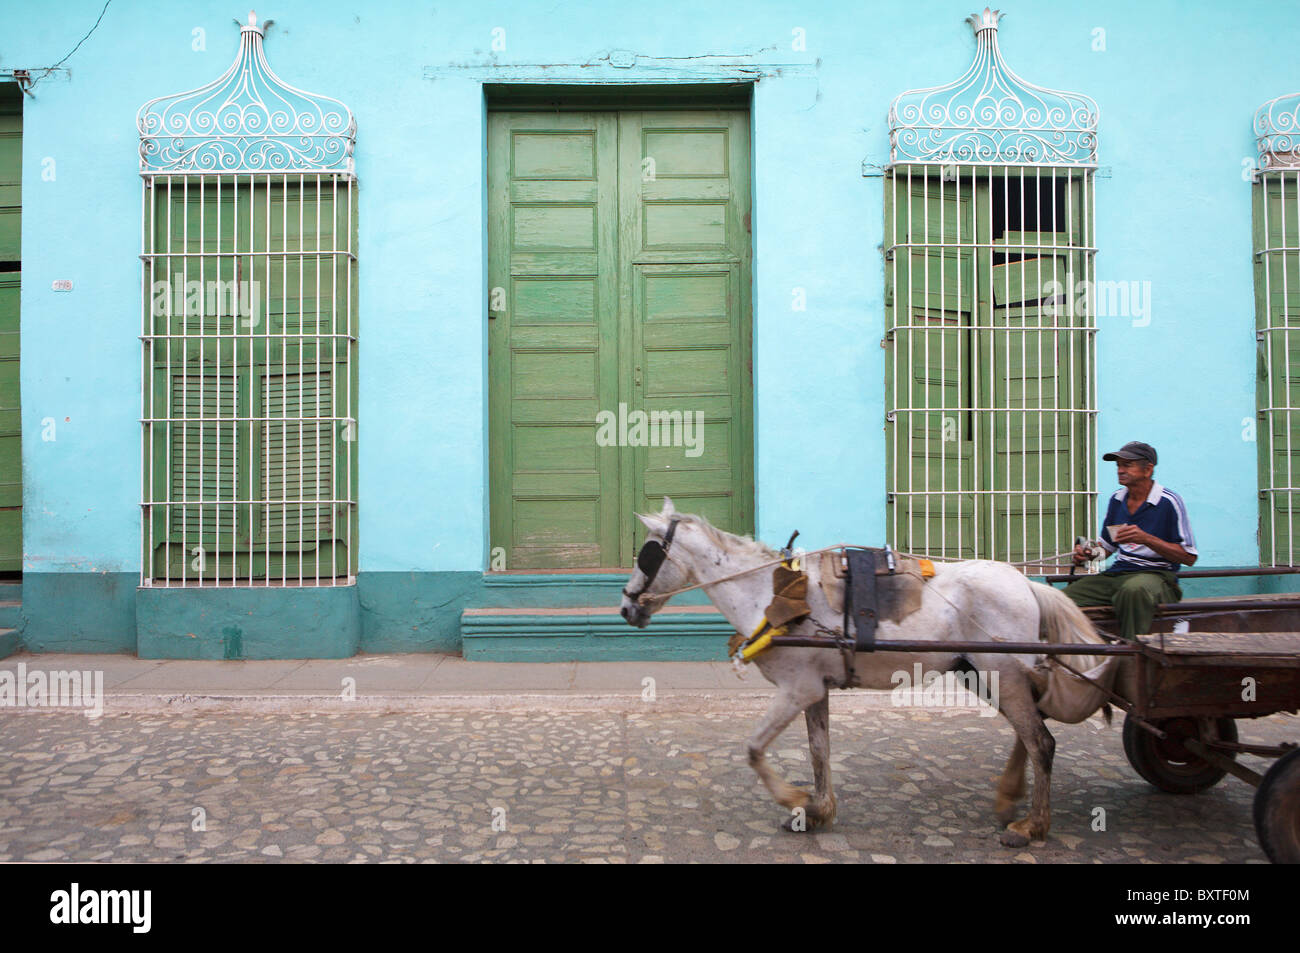 TRINIDAD: HORSE AND CART - Stock Image